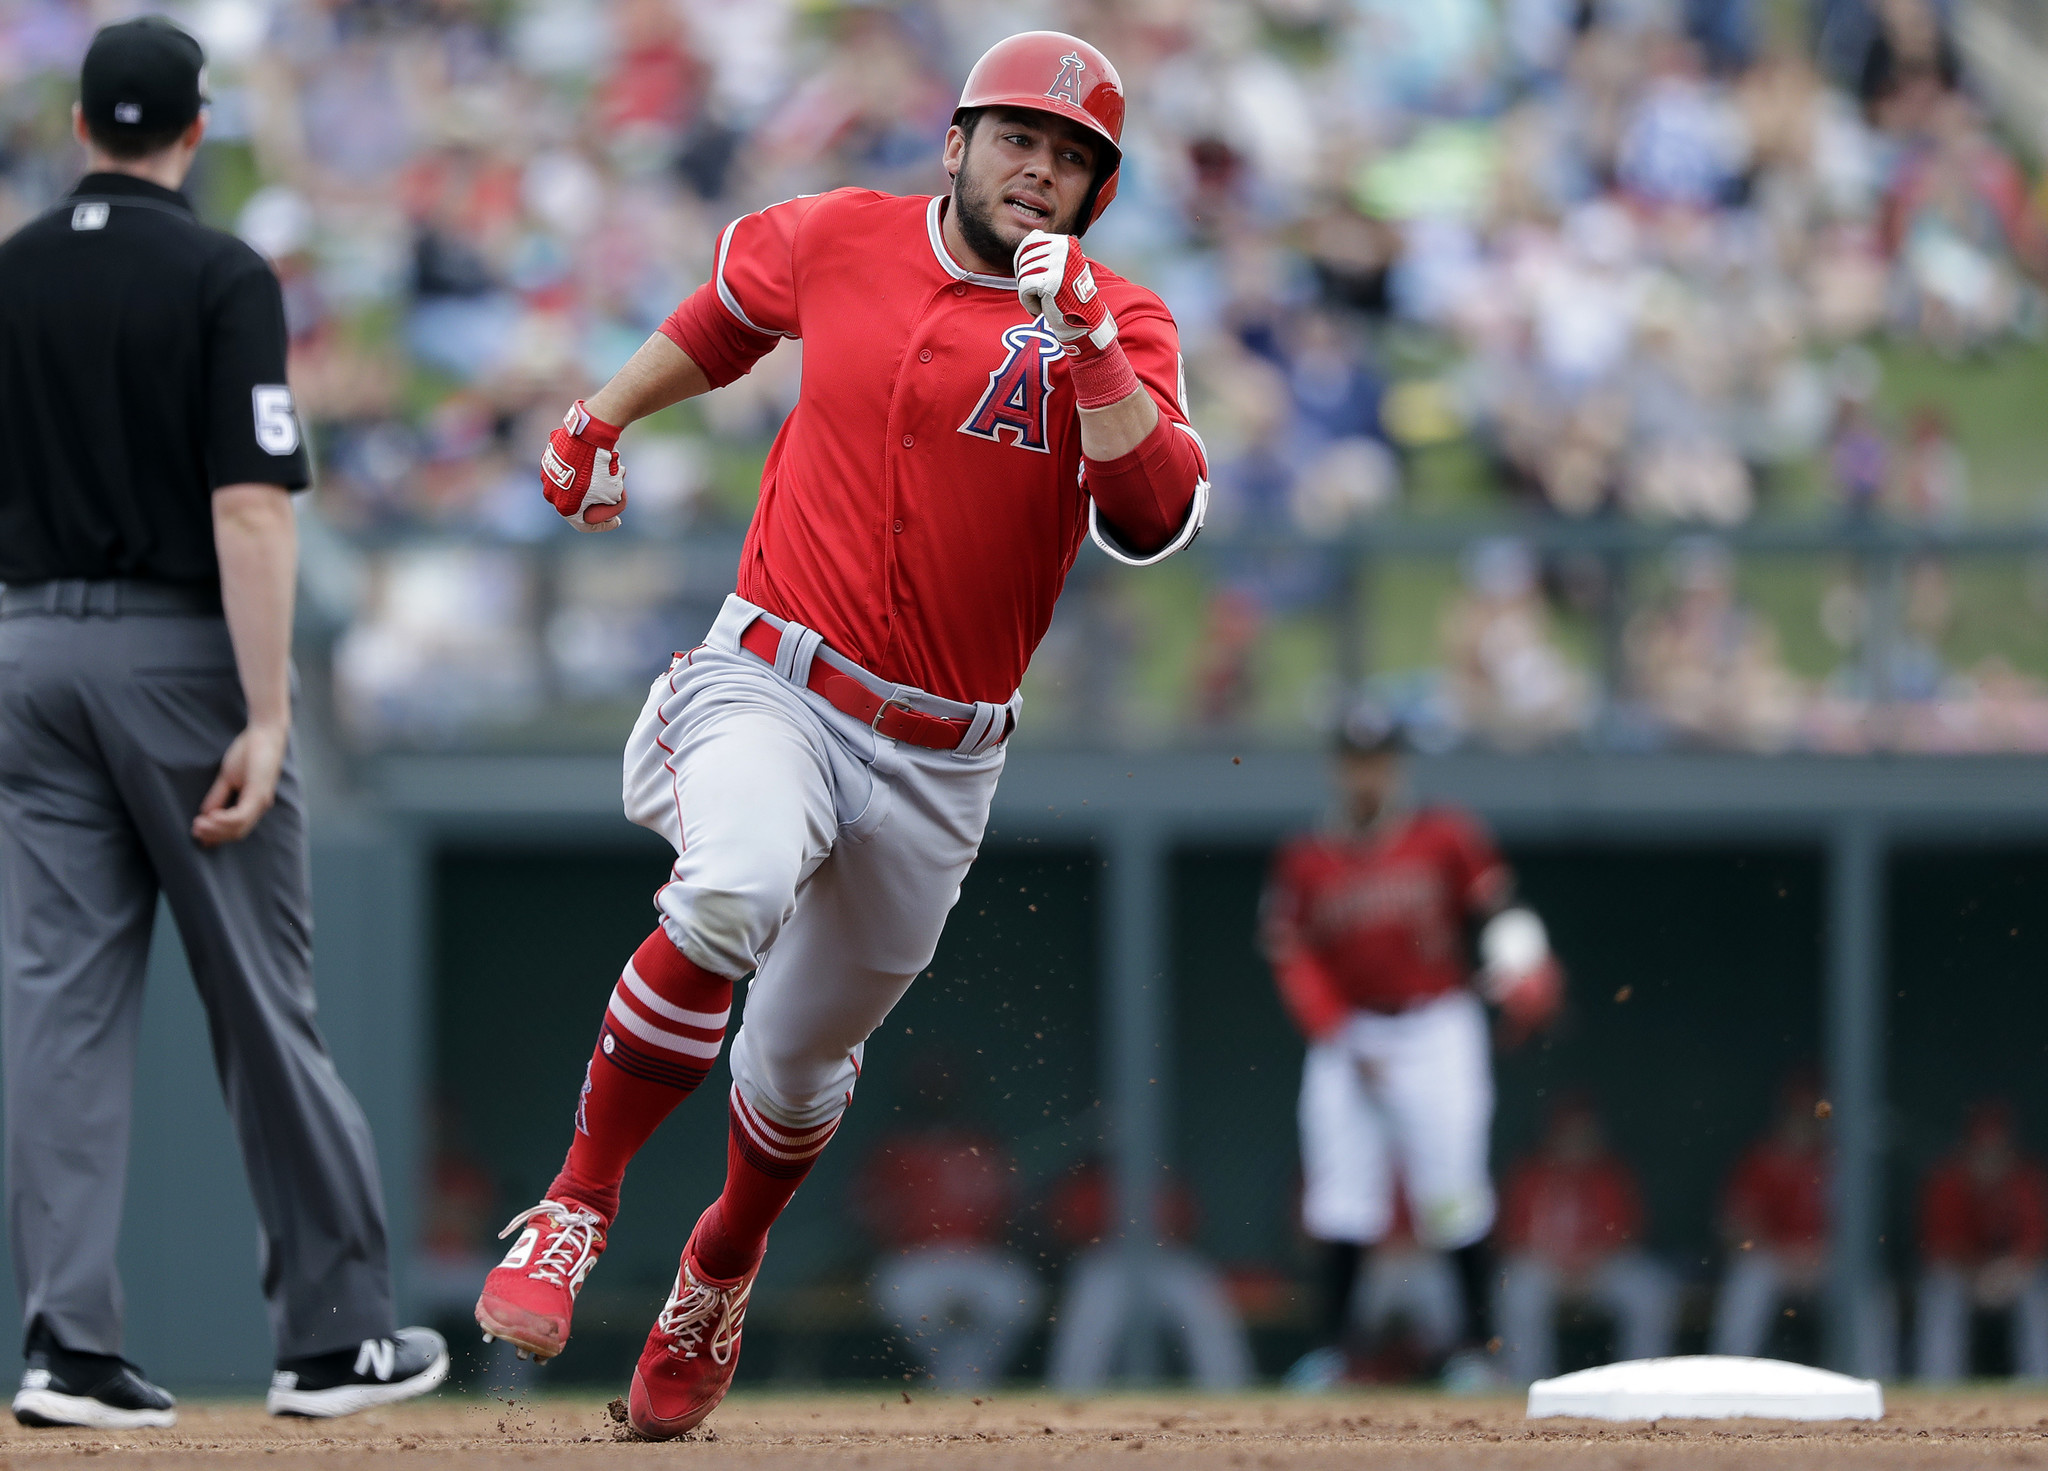 Angels' Mike Trout hits RBI single in 2-1 win over Diamondbacks in Cactus League play